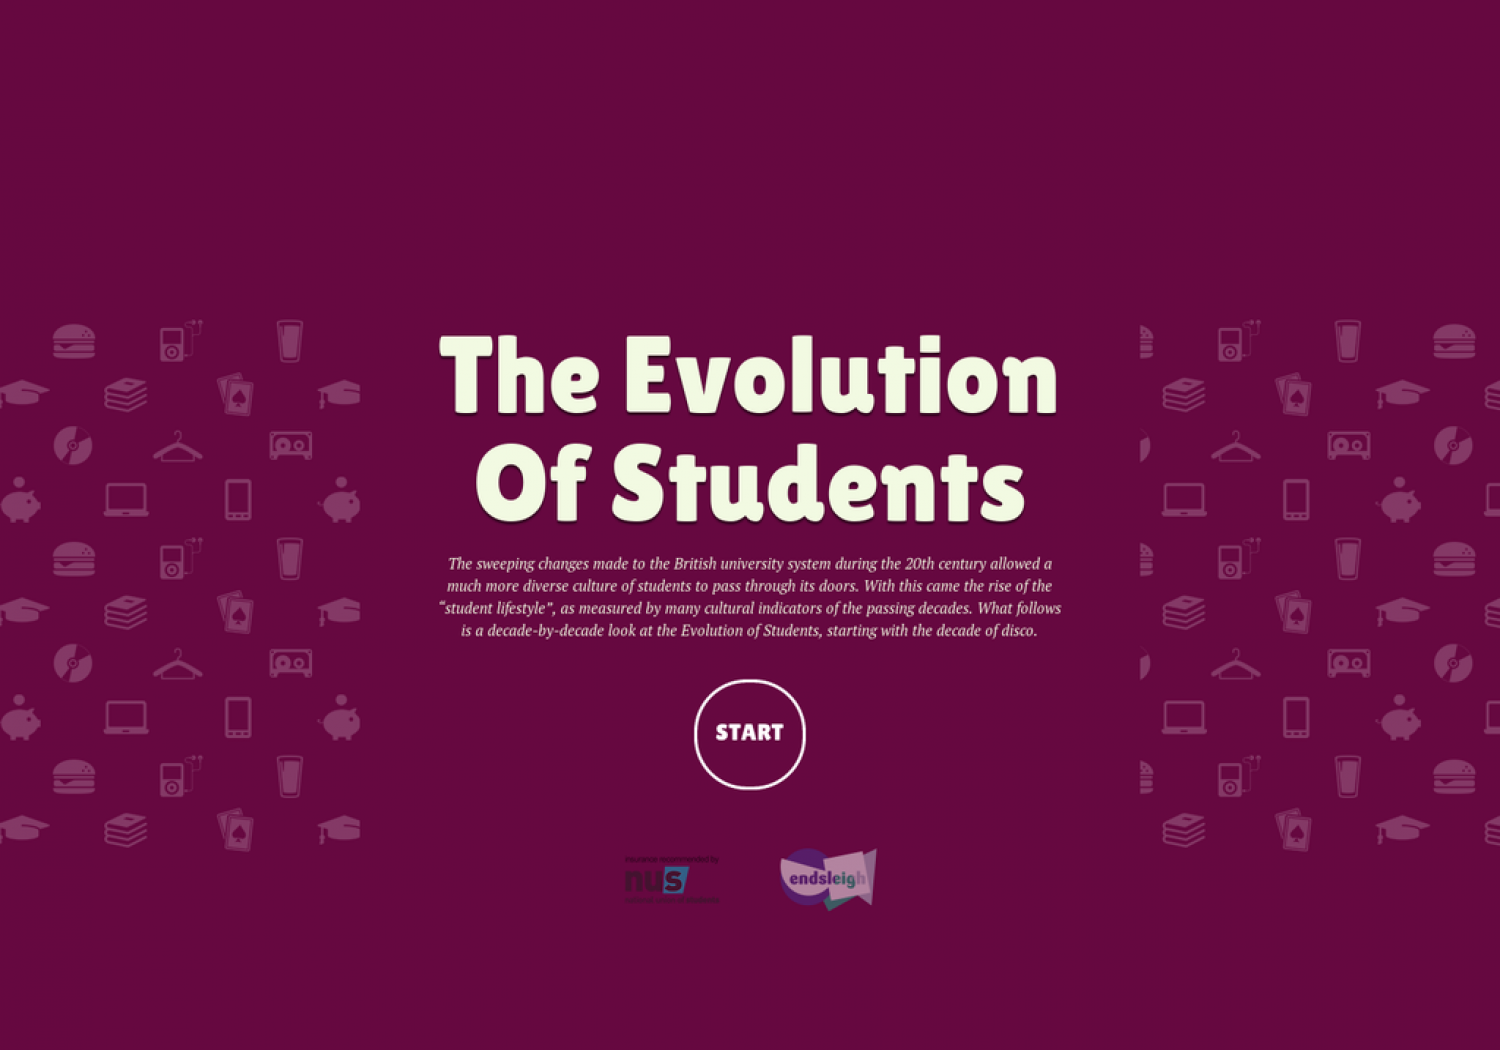 The Evolution of Students  Infographic